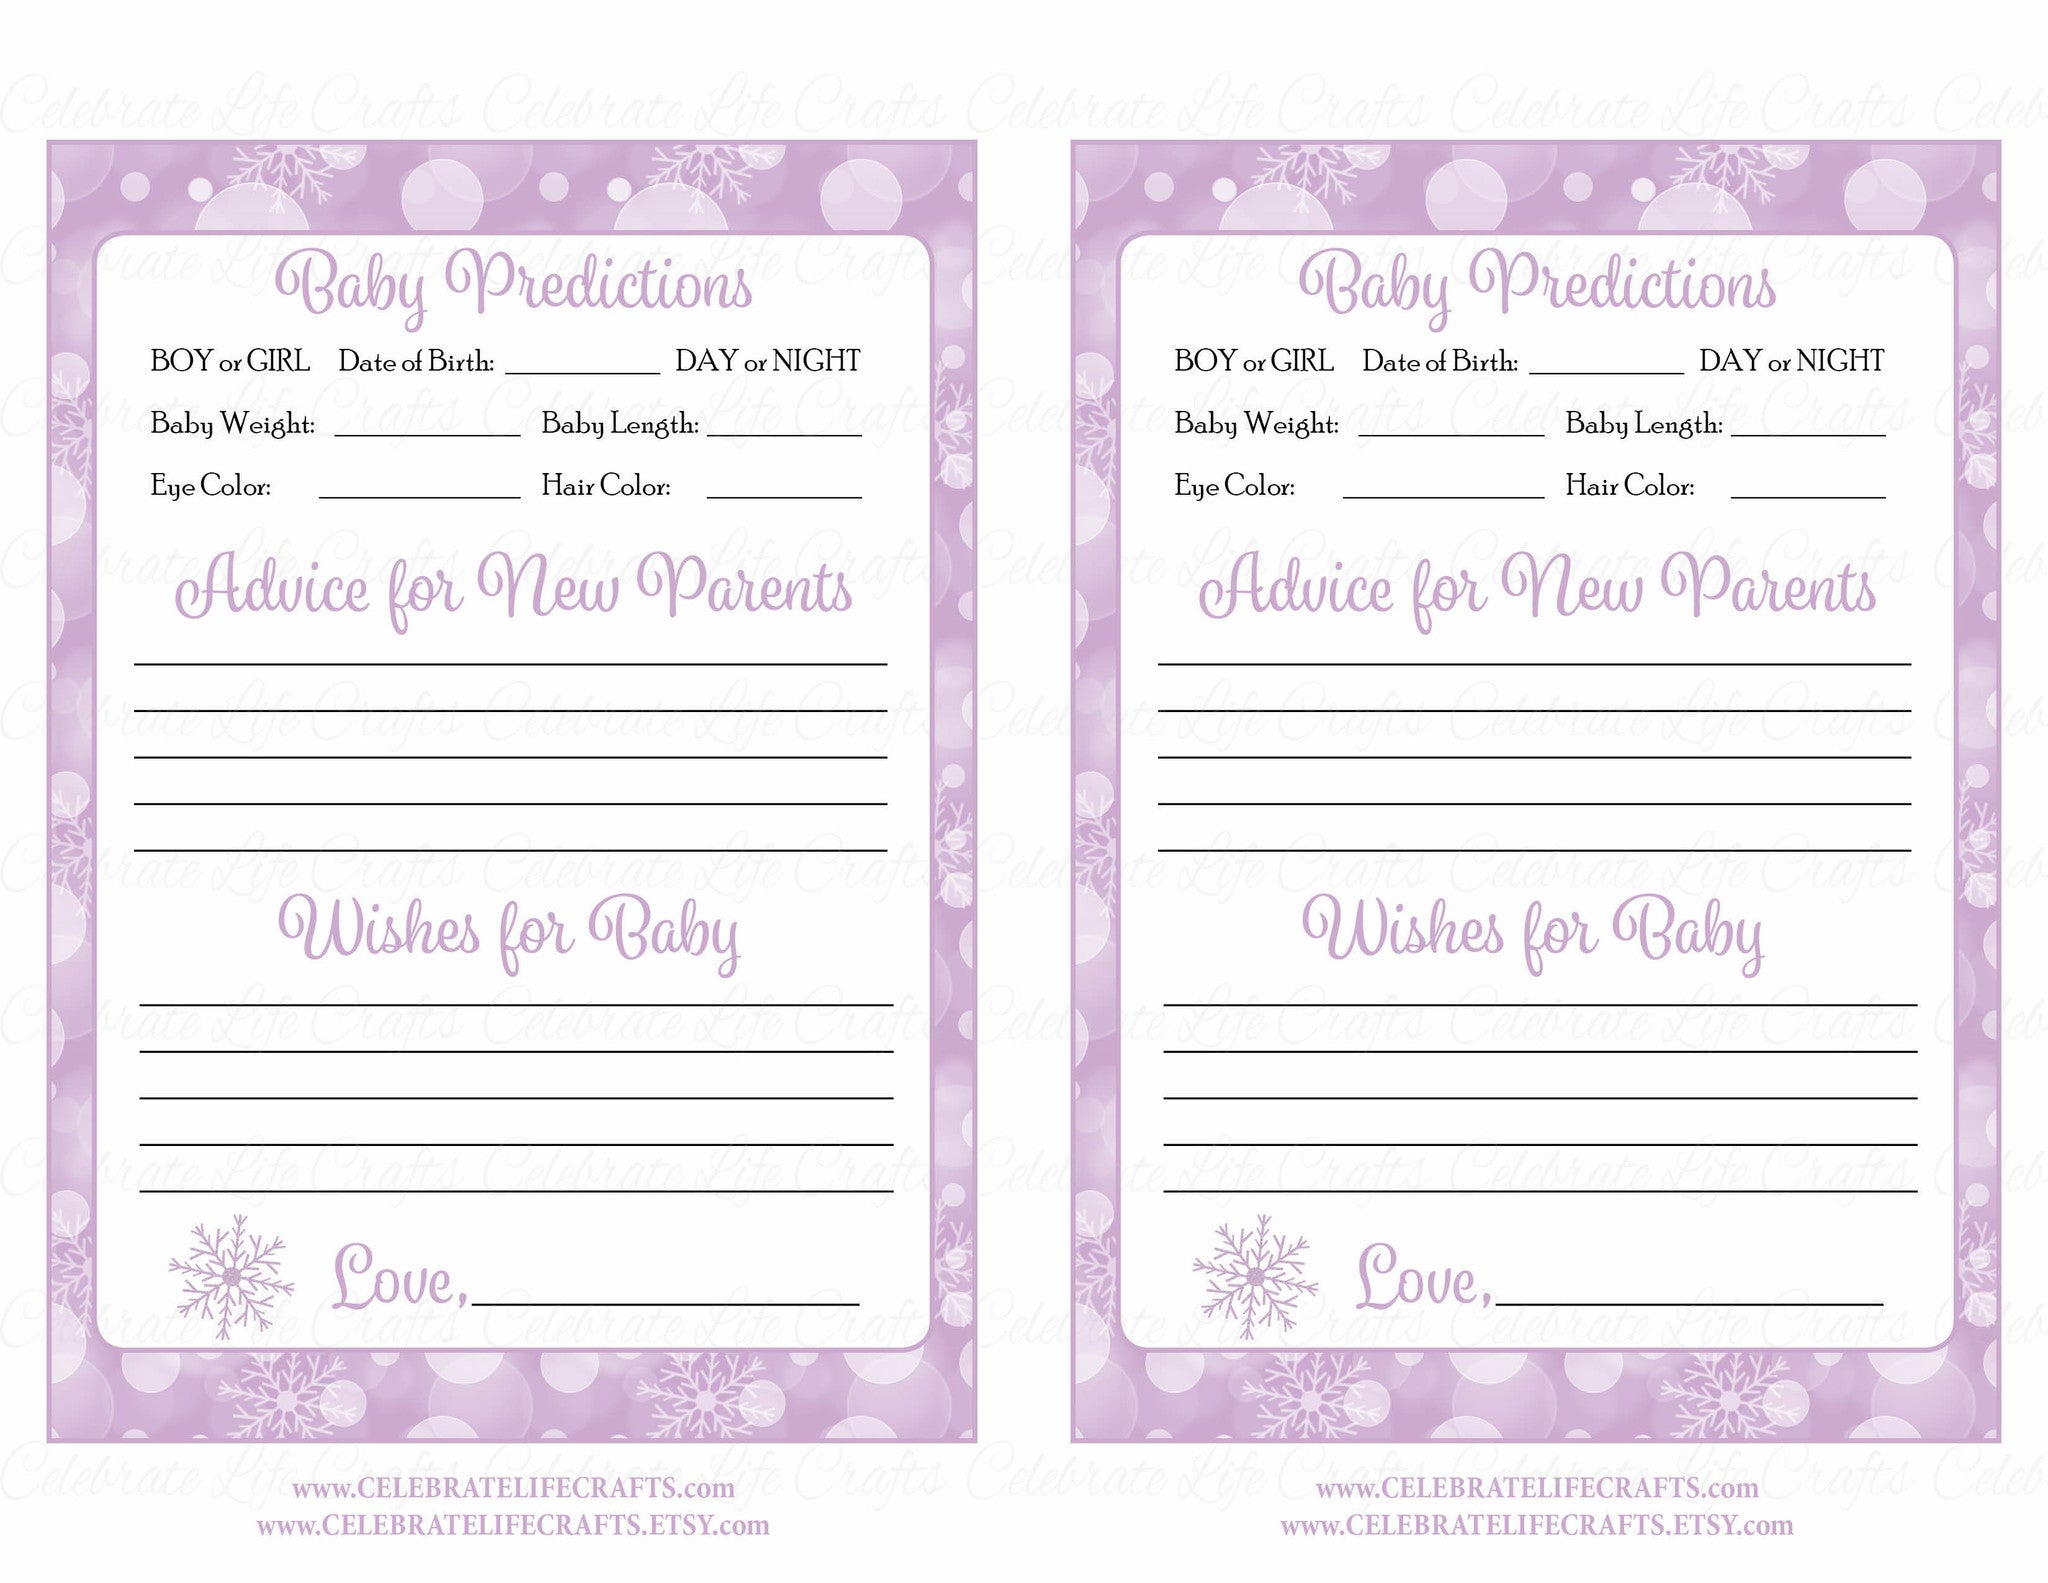 ... Prediction & Advice Cards - Printable Download - Purple Bokeh Winter  Baby Shower Activity - B22004